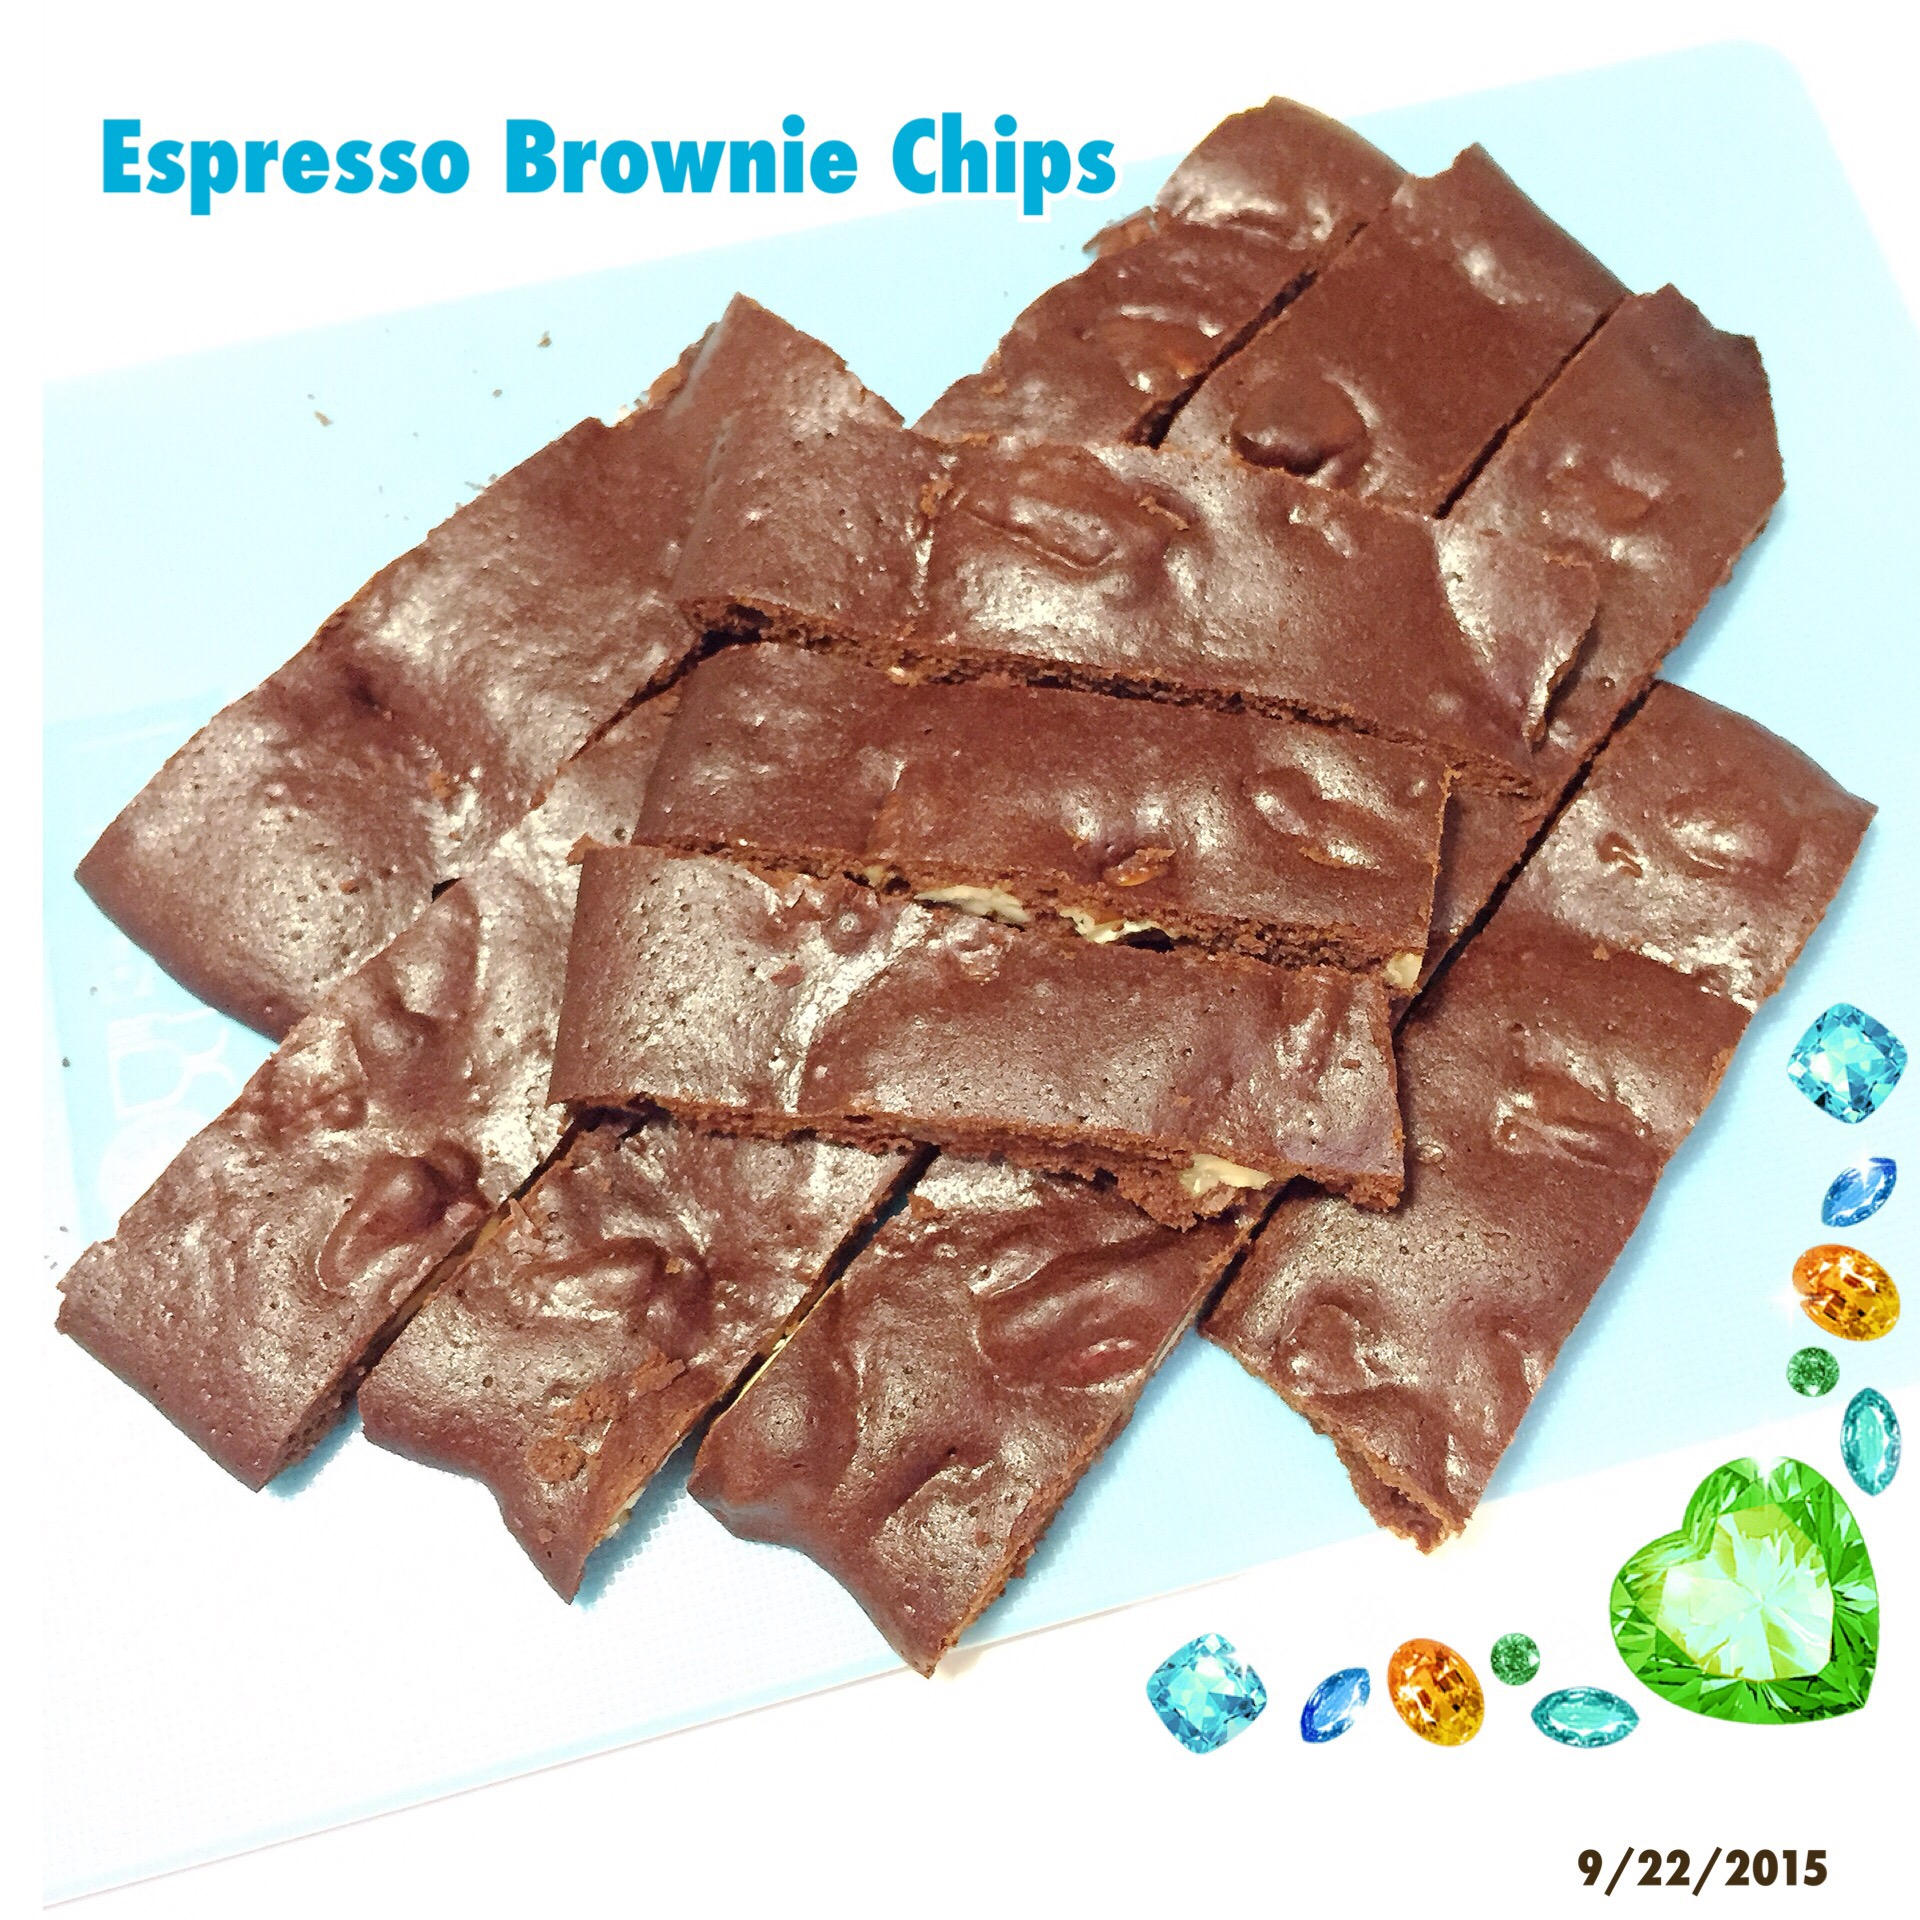 C: Espresso Brownie Chips